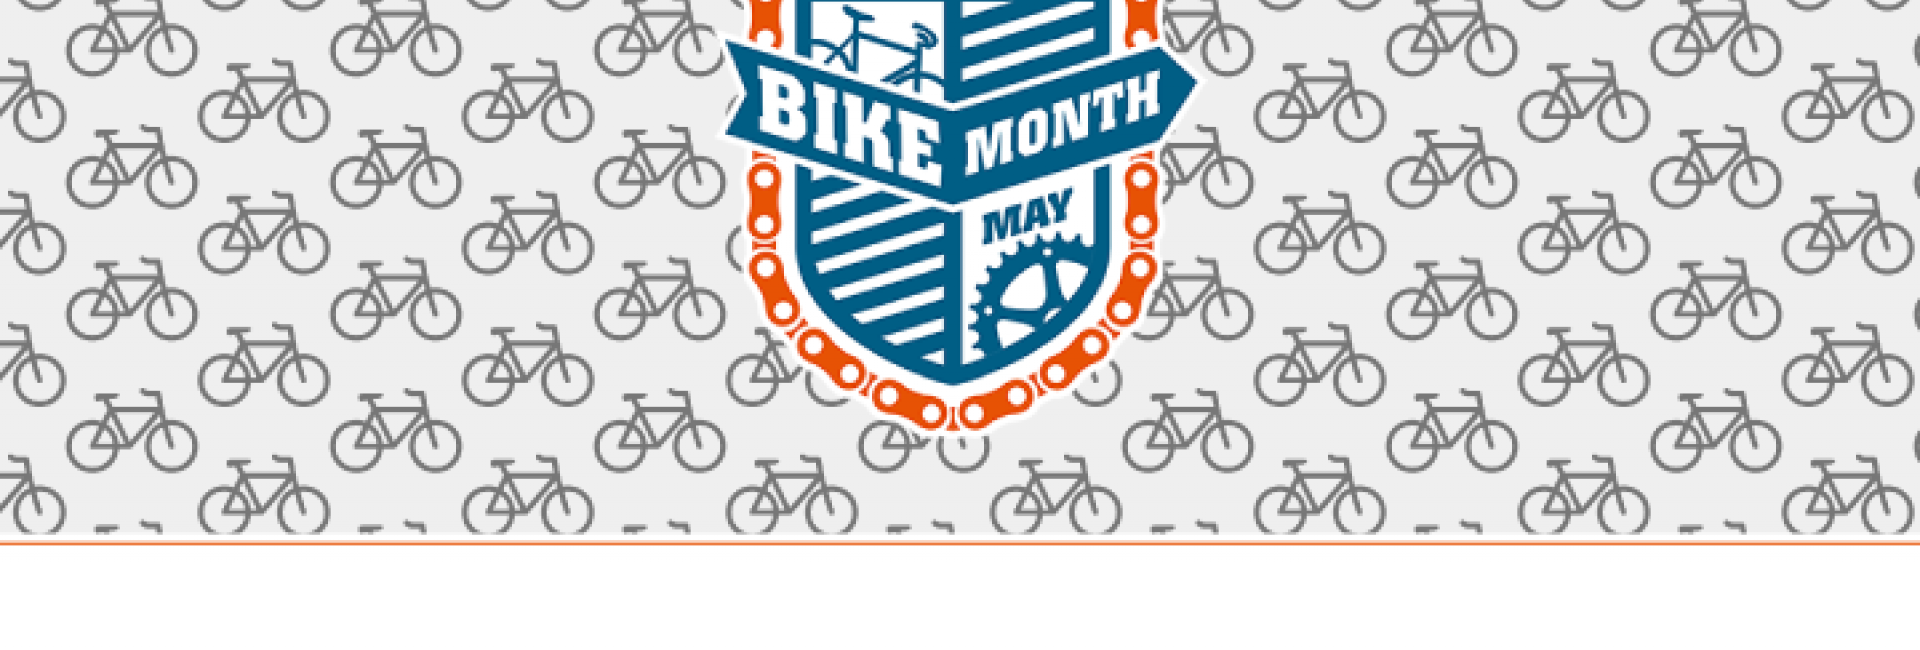 Image of Get Pedaling: May is Bike Month